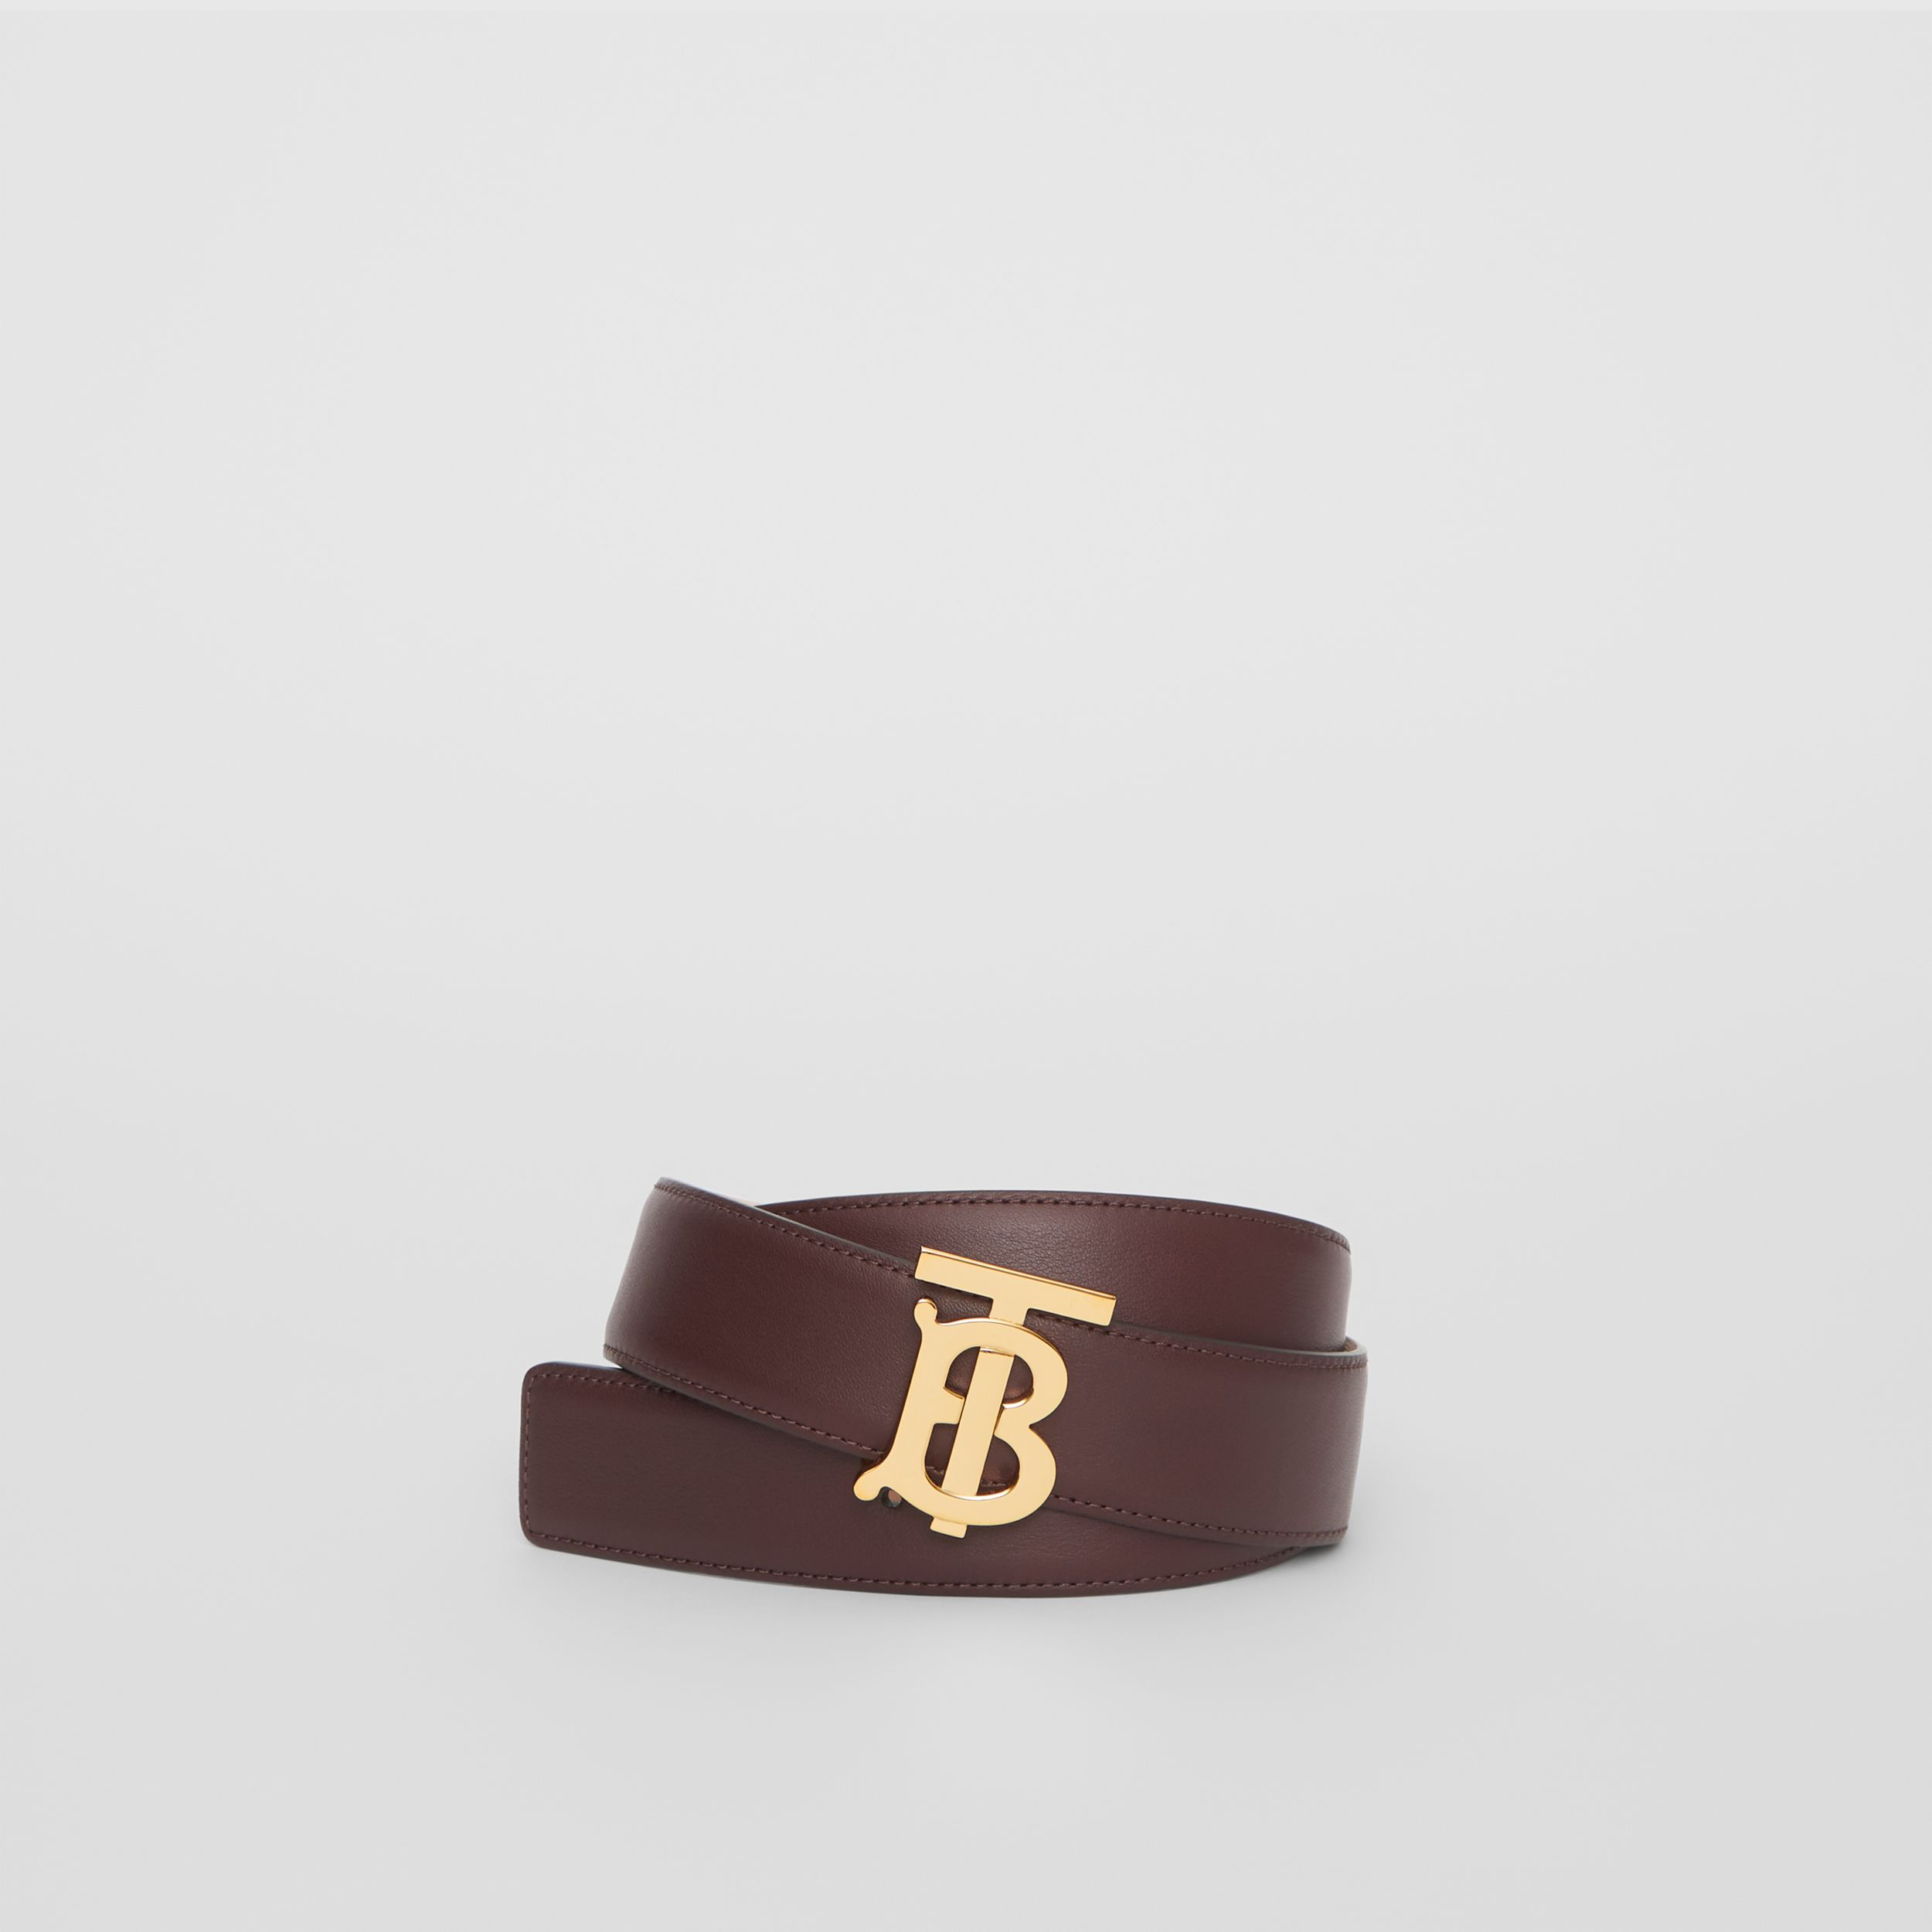 Reversible Monogram Motif Leather Belt in Oxblood/rose Beige | Burberry - 1